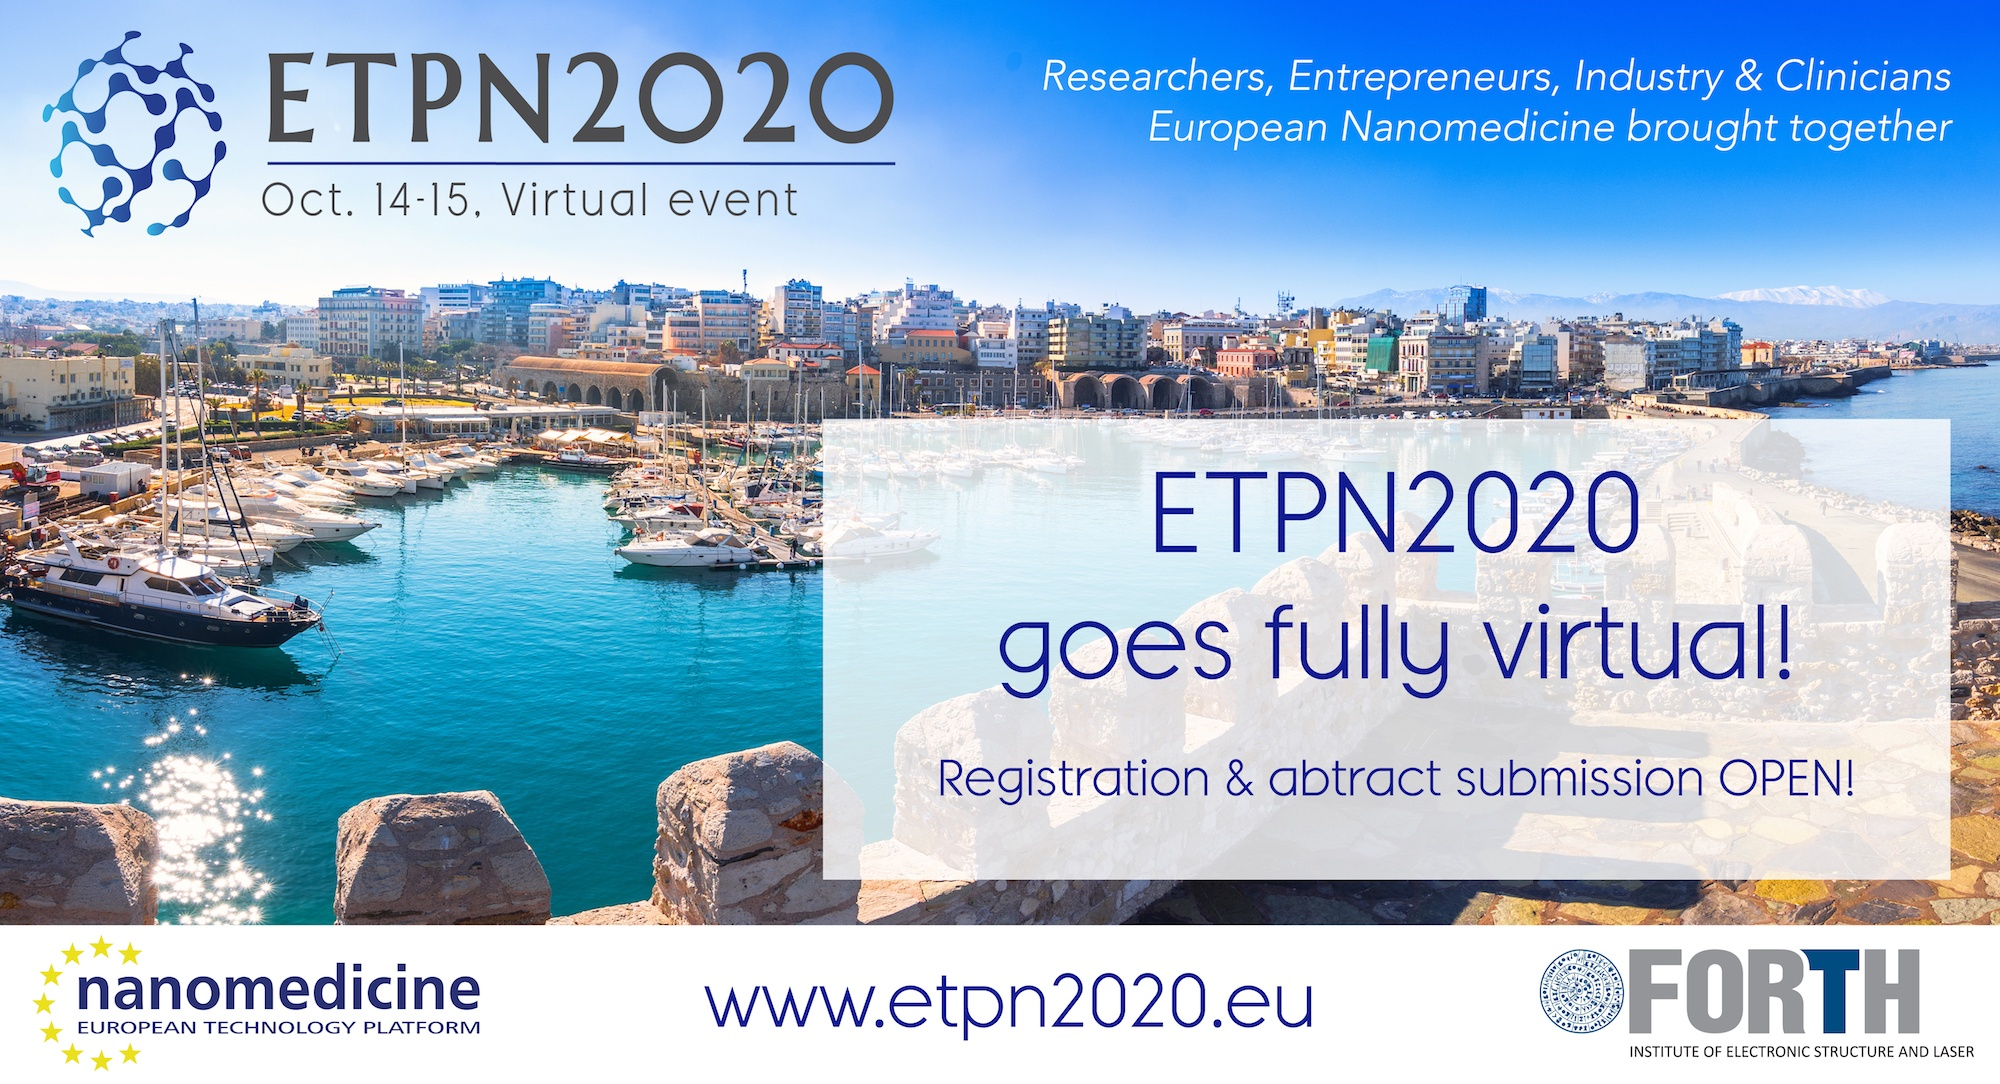 ETPN2020, Oct. 14-15, Virtual event